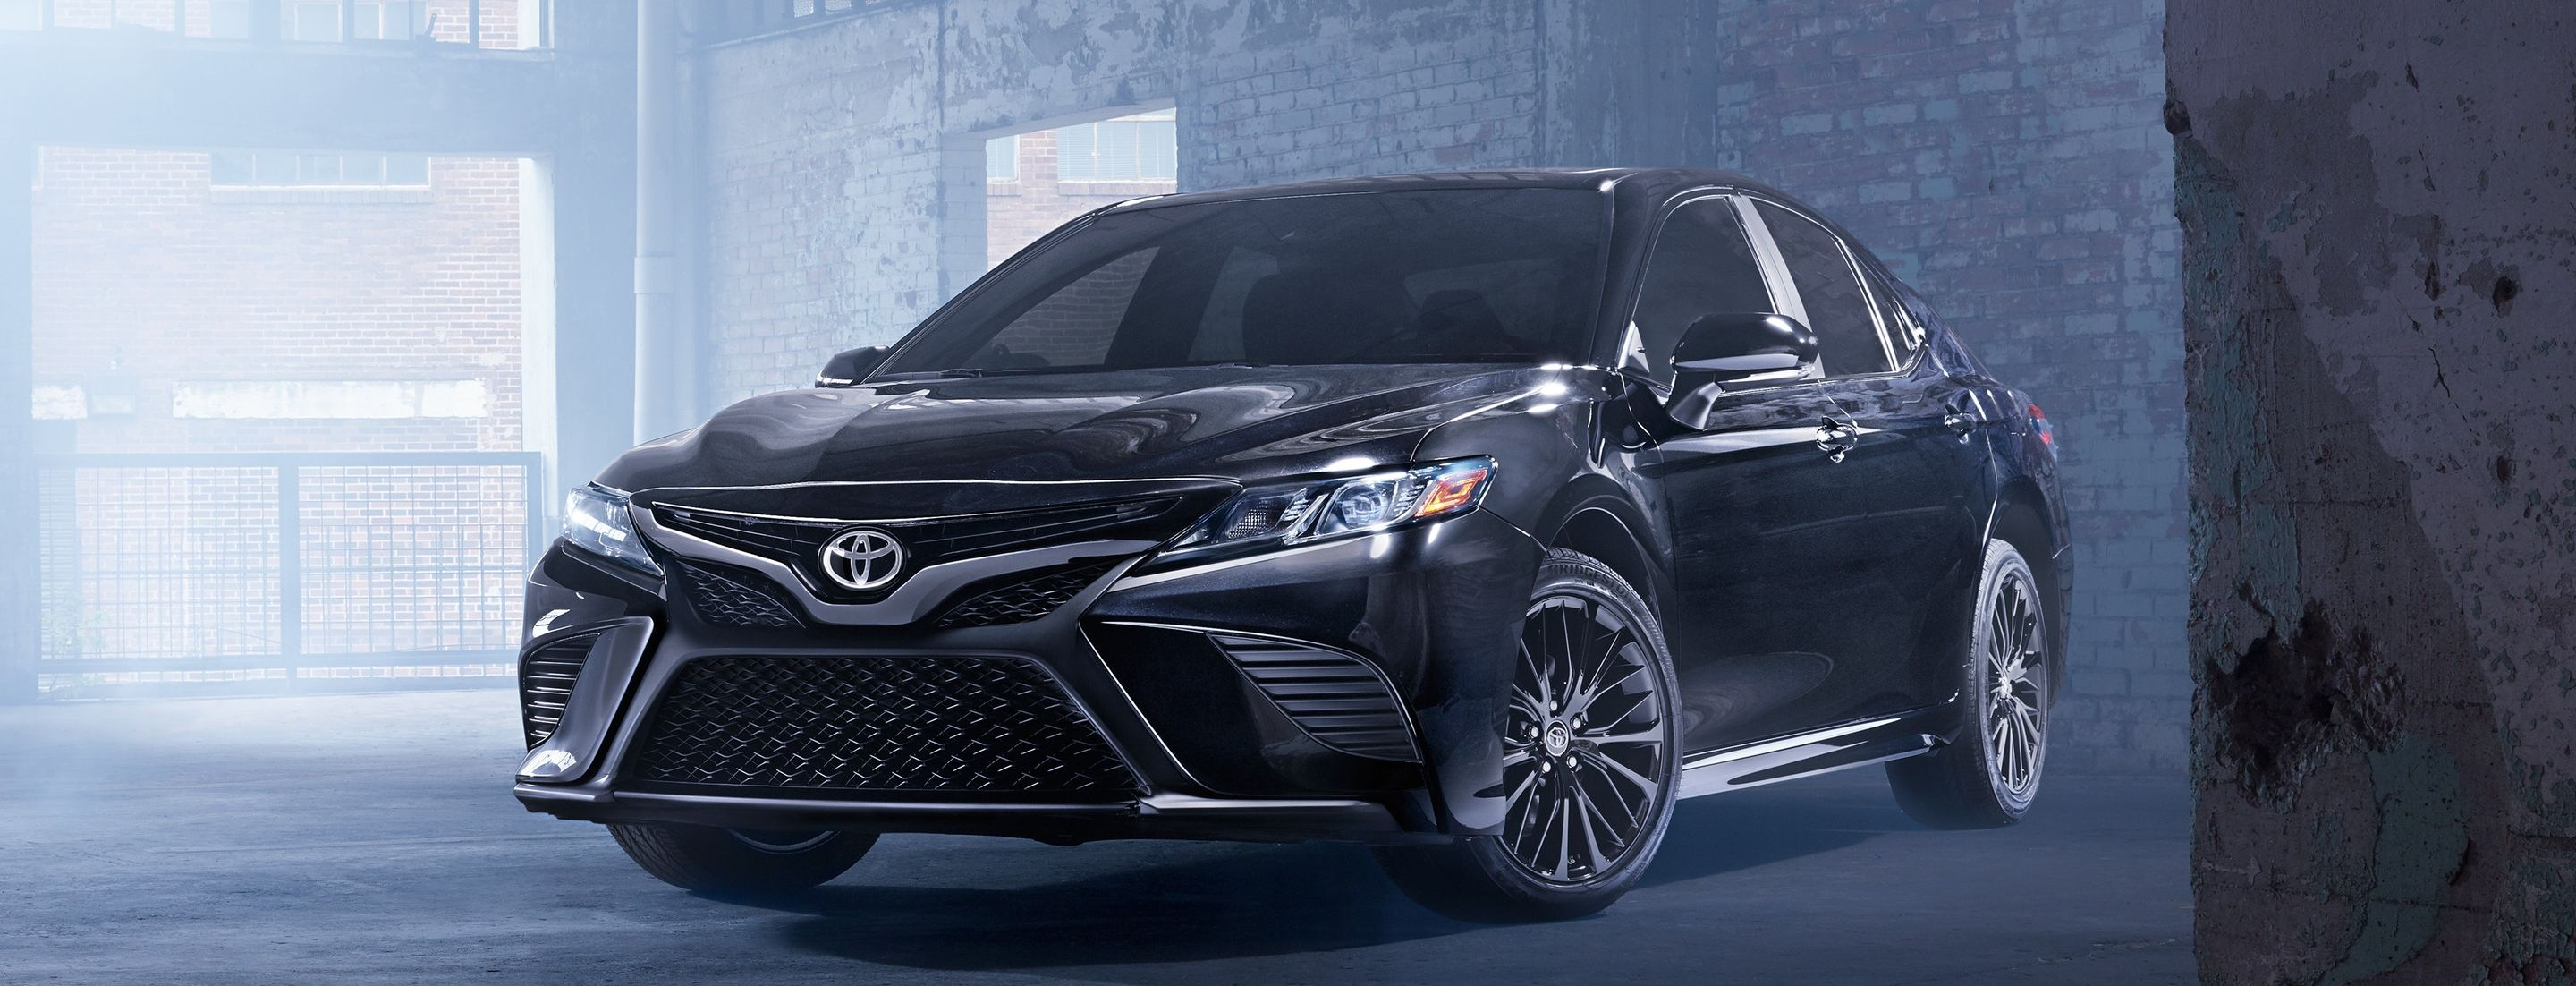 2019 Toyota Camry for Sale near Beloit, WI